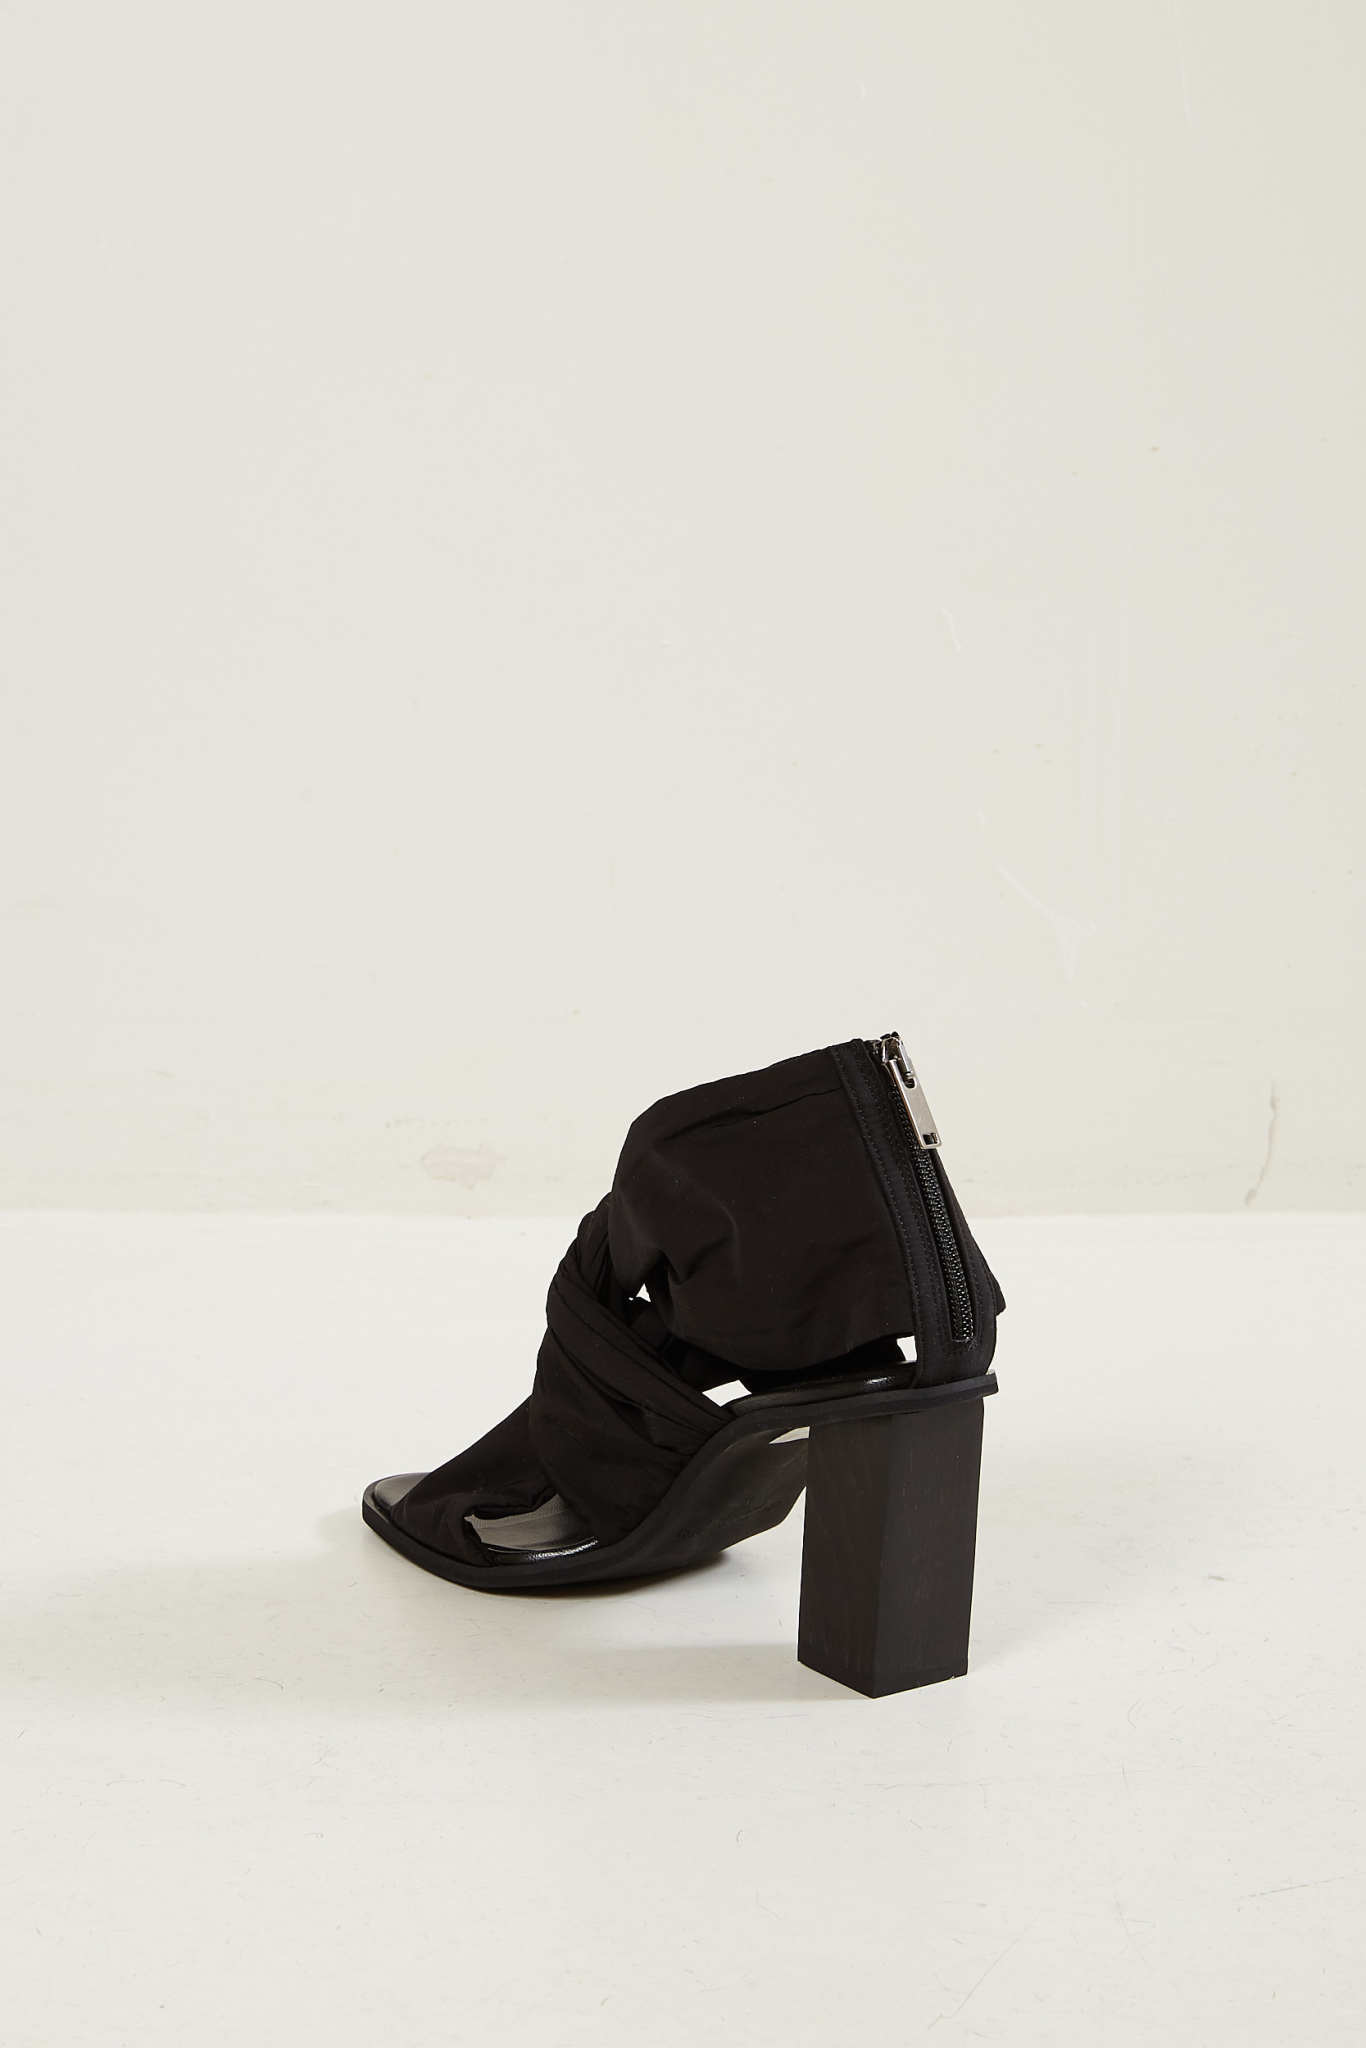 Christian Wijnants - Abra knotted heels